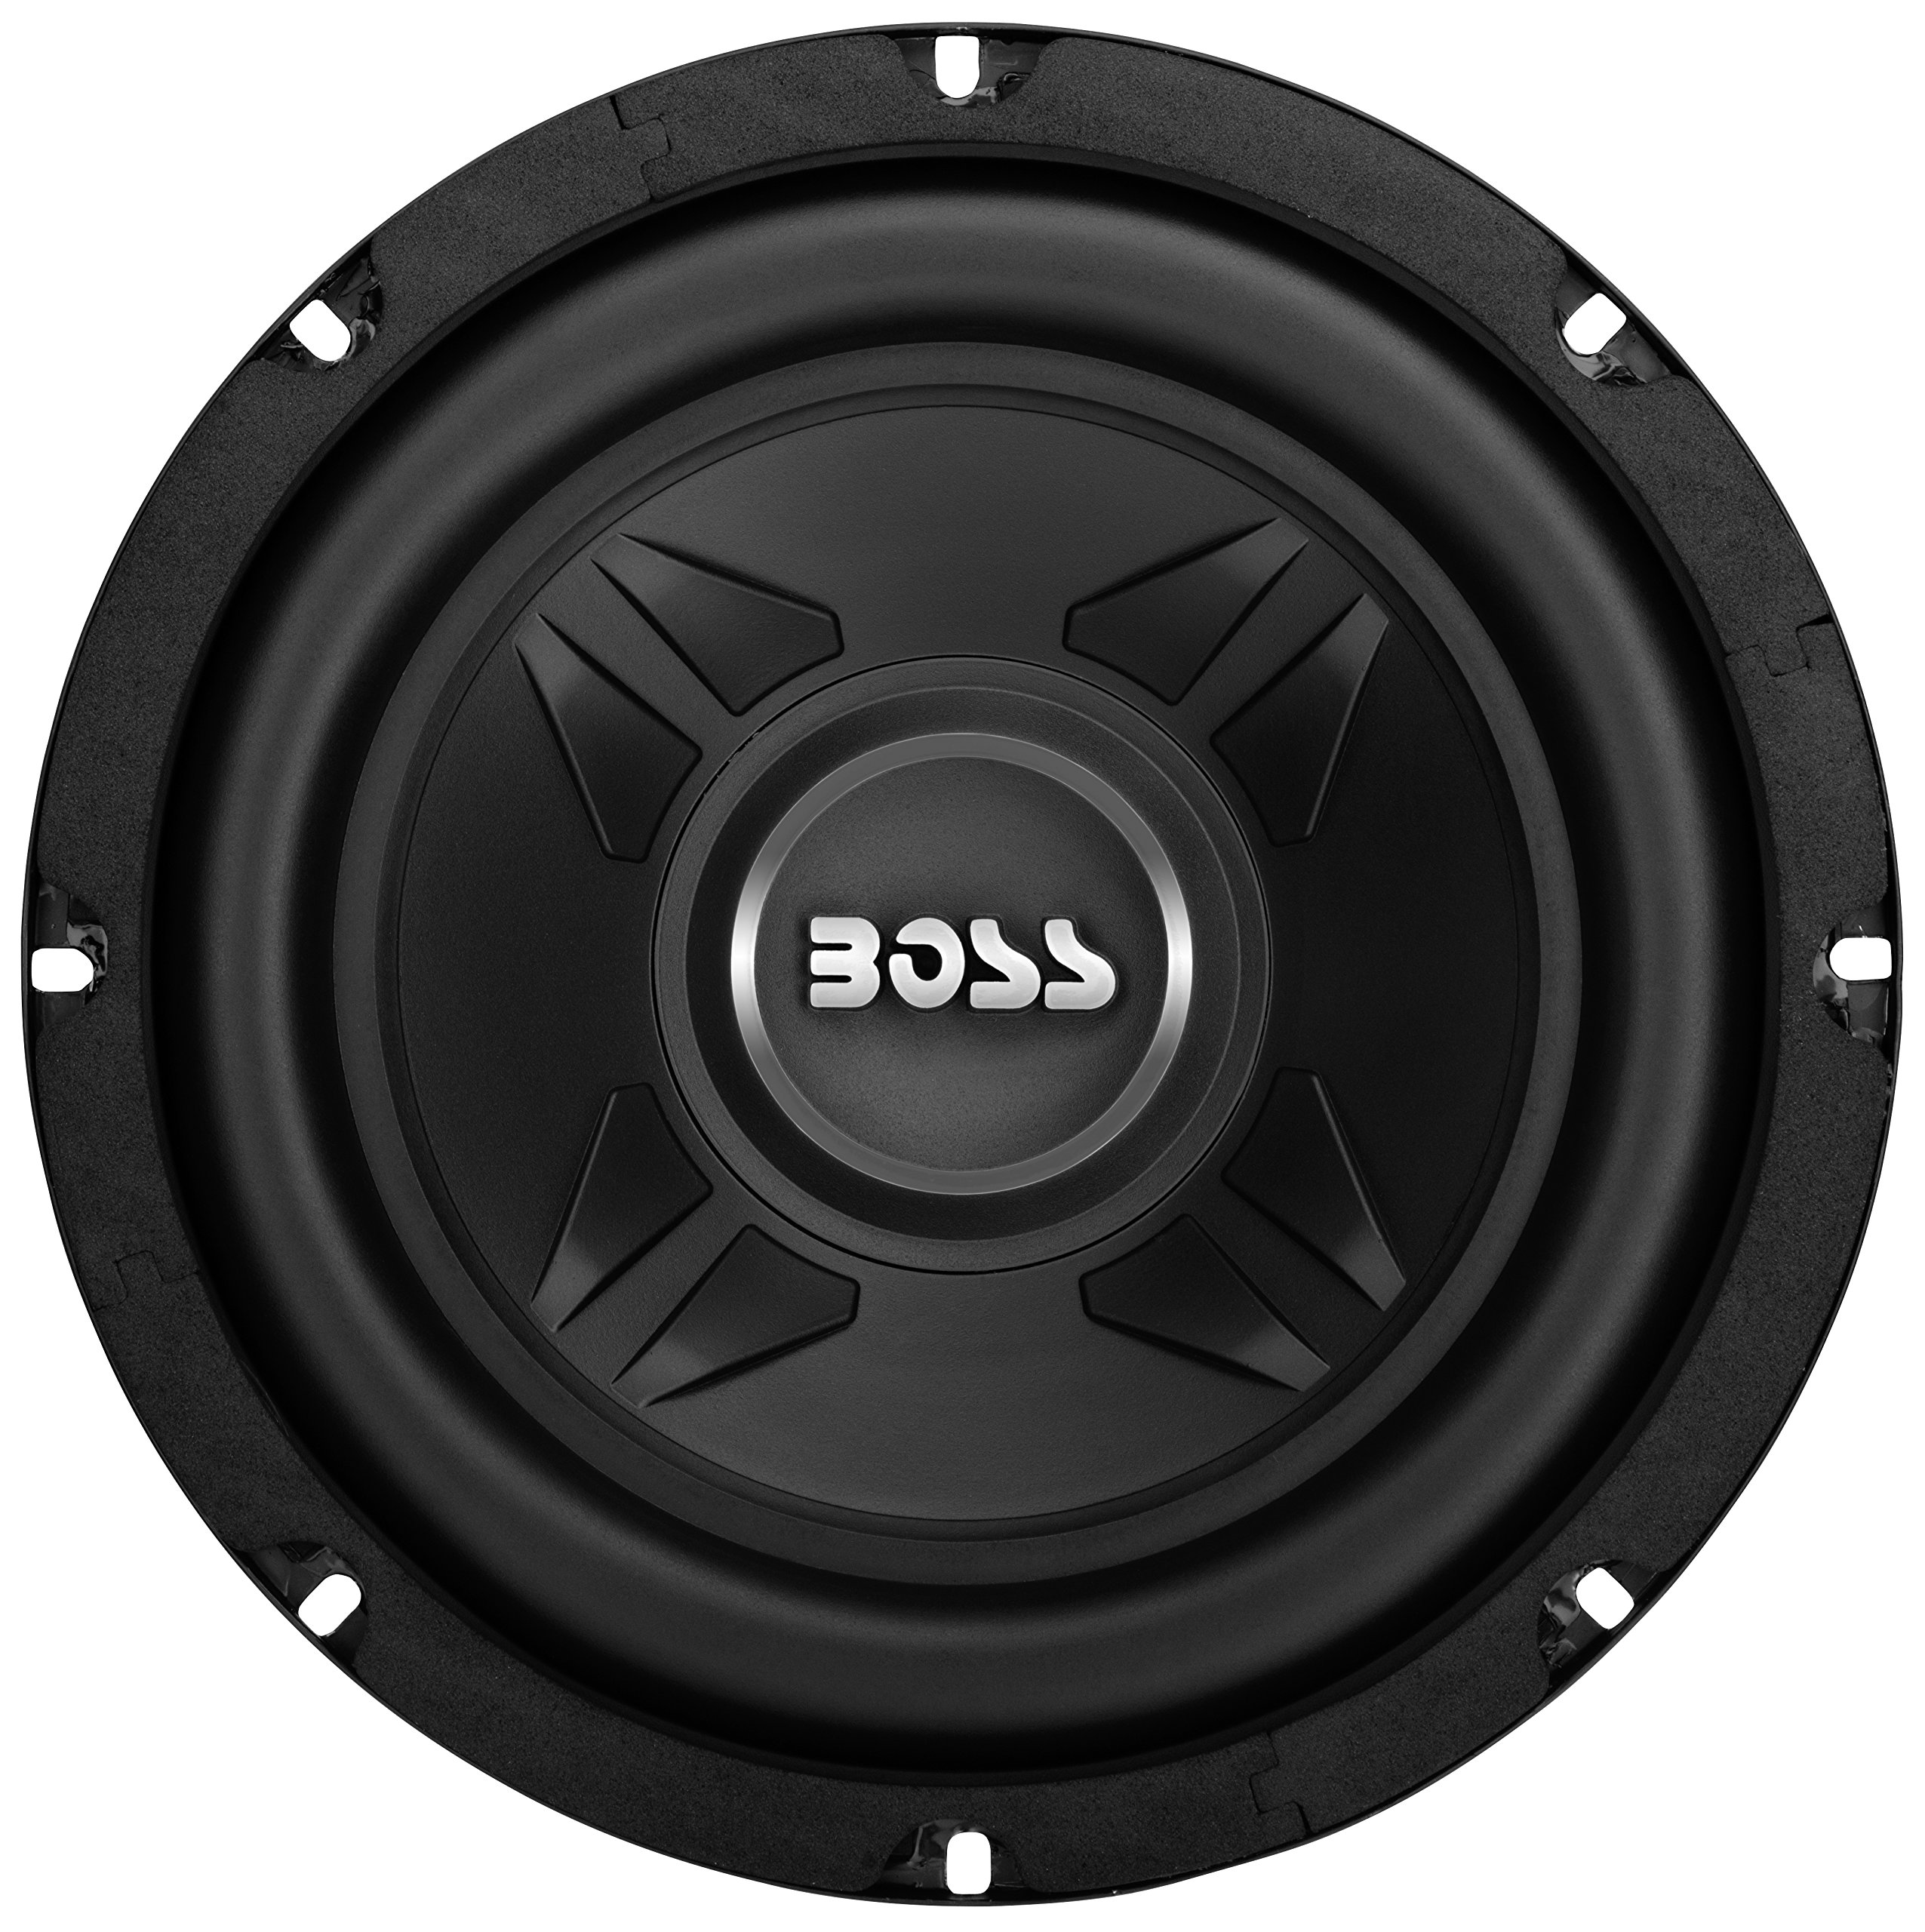 BOSS Audio Systems CXX8 Car Subwoofer - 600 Watts Maximum Power, 8 Inch, Single 4 Ohm Voice Coil, Easy Mounting - Sold Individually by BOSS Audio Systems